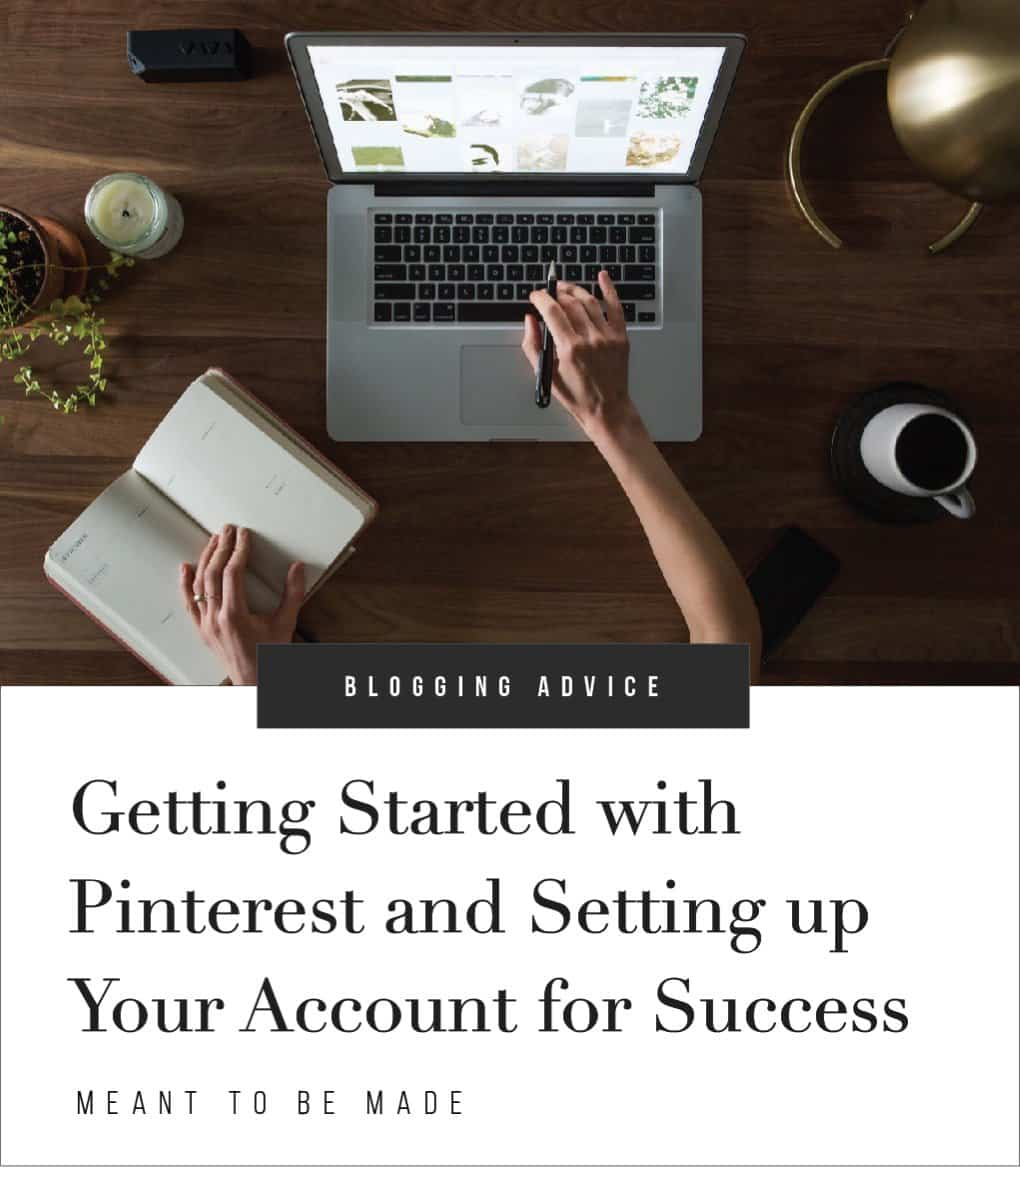 Getting Started with Pinterest and Setting Up Your Account for Success